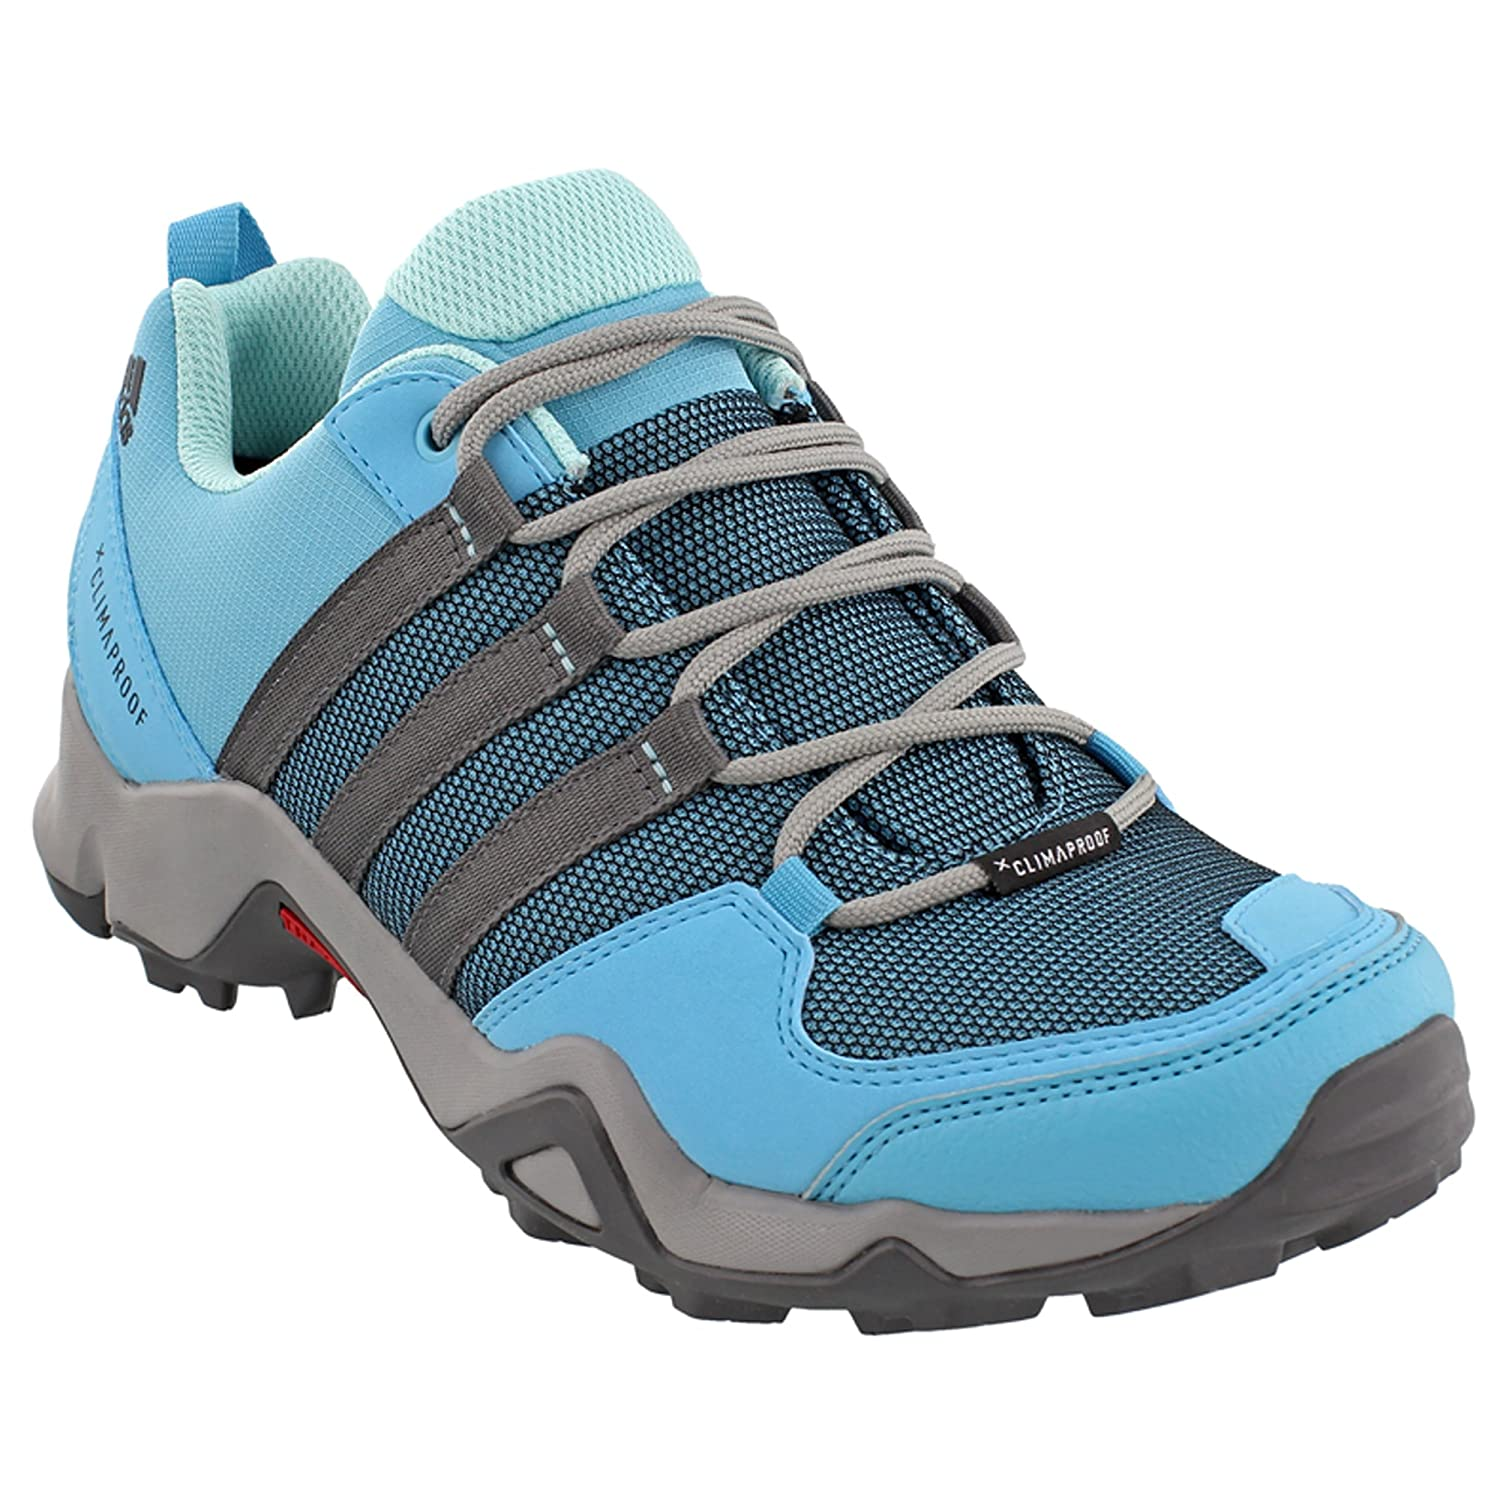 adidas AX2 CP Hiking Shoes Womens B01N2Z4DJ2 7 B(M) US|Ch Solid Grey/Vapour Blue/Grey Five